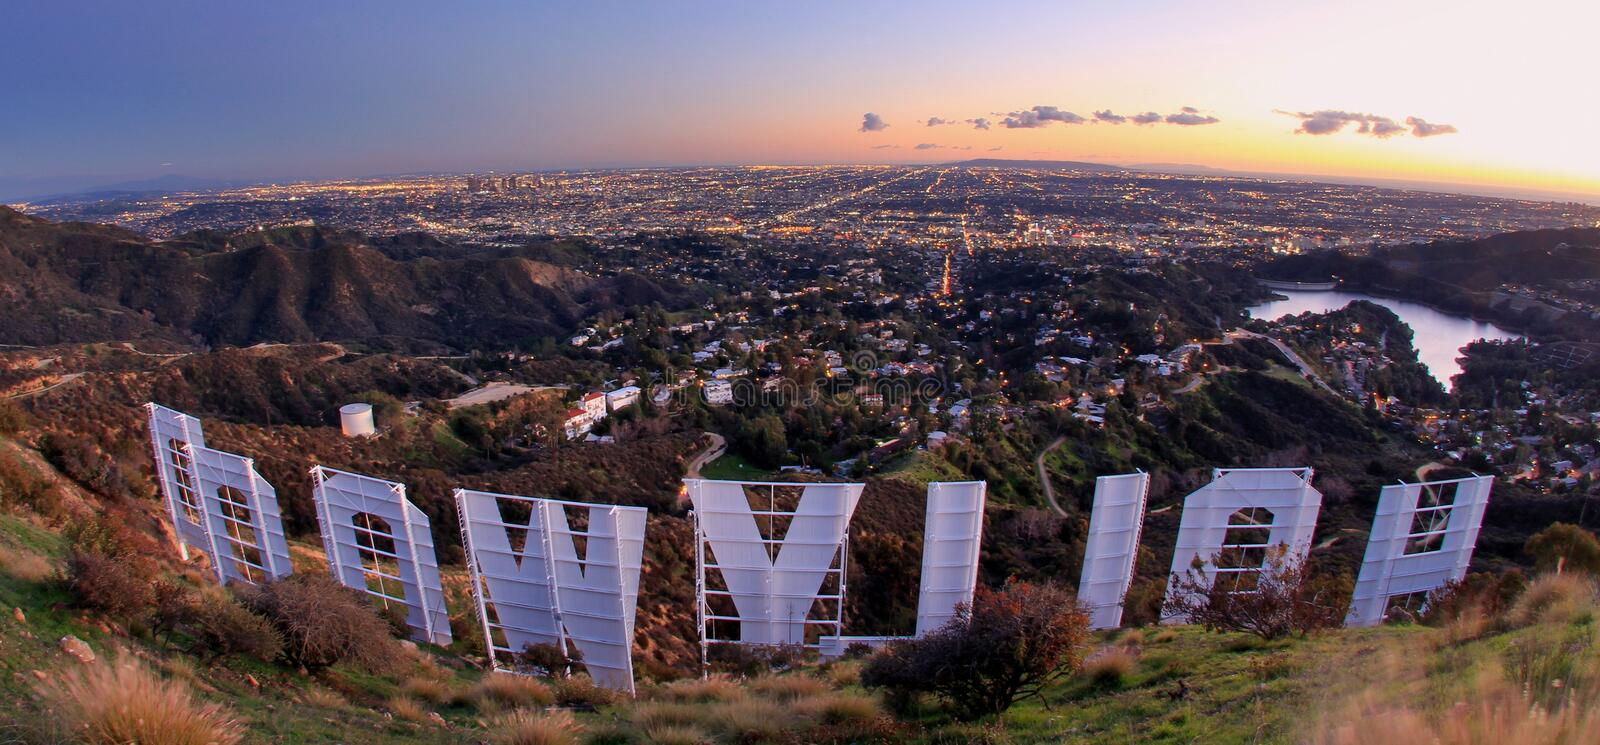 Hollywood Hills Editorial Stock Image - Image: 30050849  Hollywood Hills...